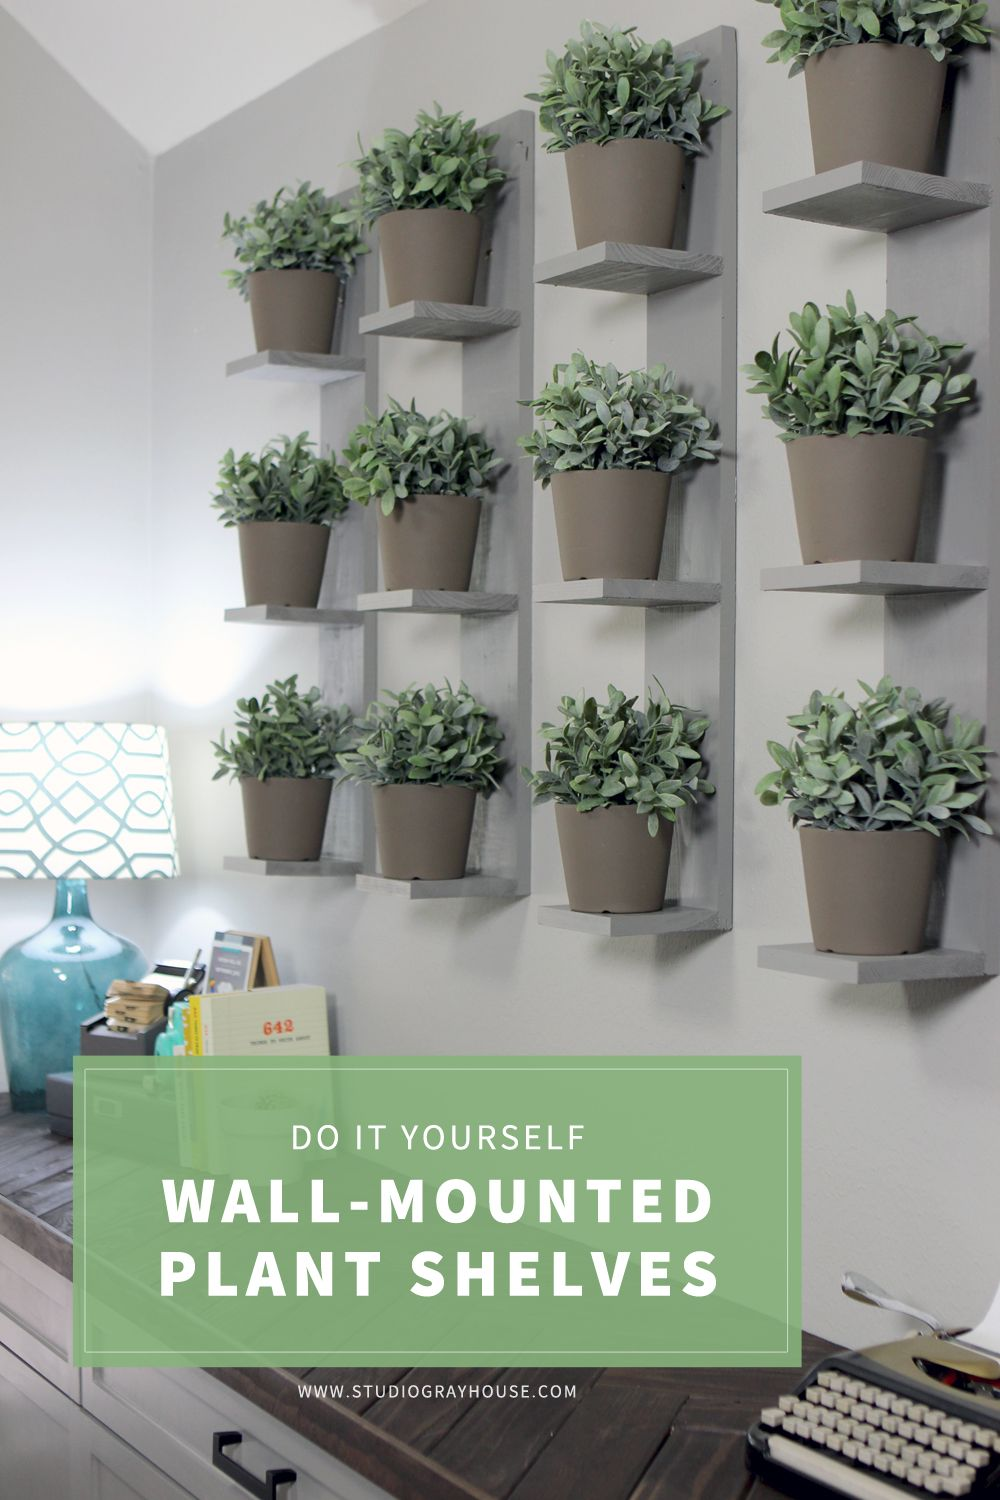 Build These Super Simple Wall Mounted Plant Shelves To Display Real Or Faux Plants And Create A This Weekend Diy Project Requires Minimal